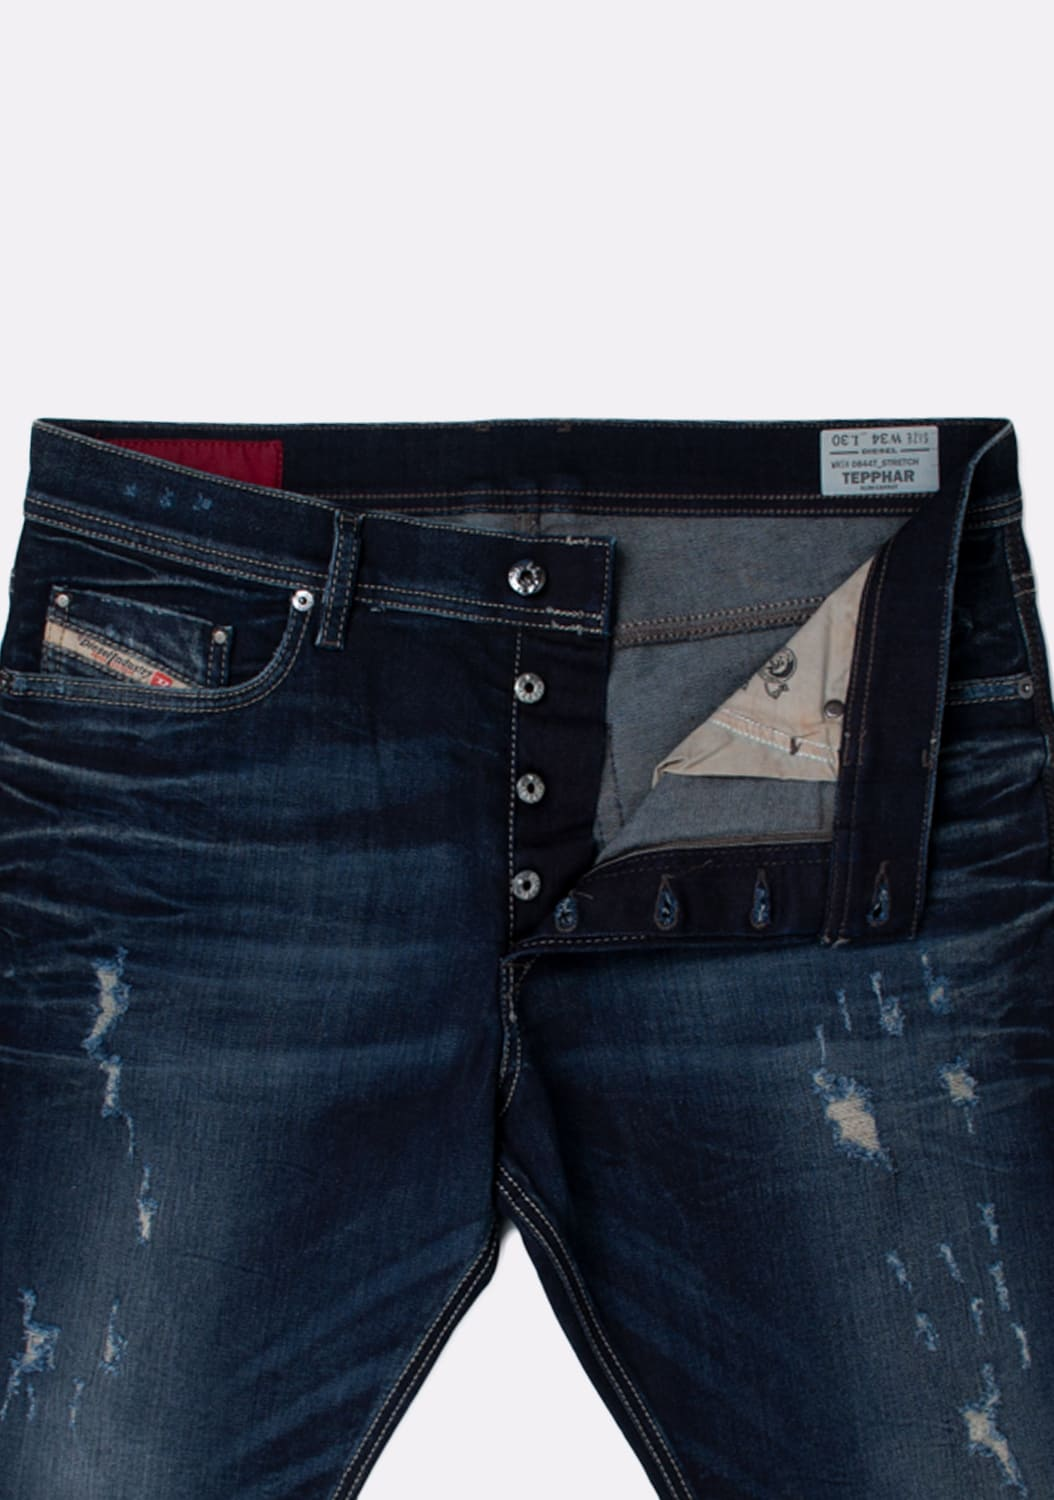 Diesel-Tepphar-0844T-Stretch-Slim-Carrot-dzinsai-dydis 34-30 (4)